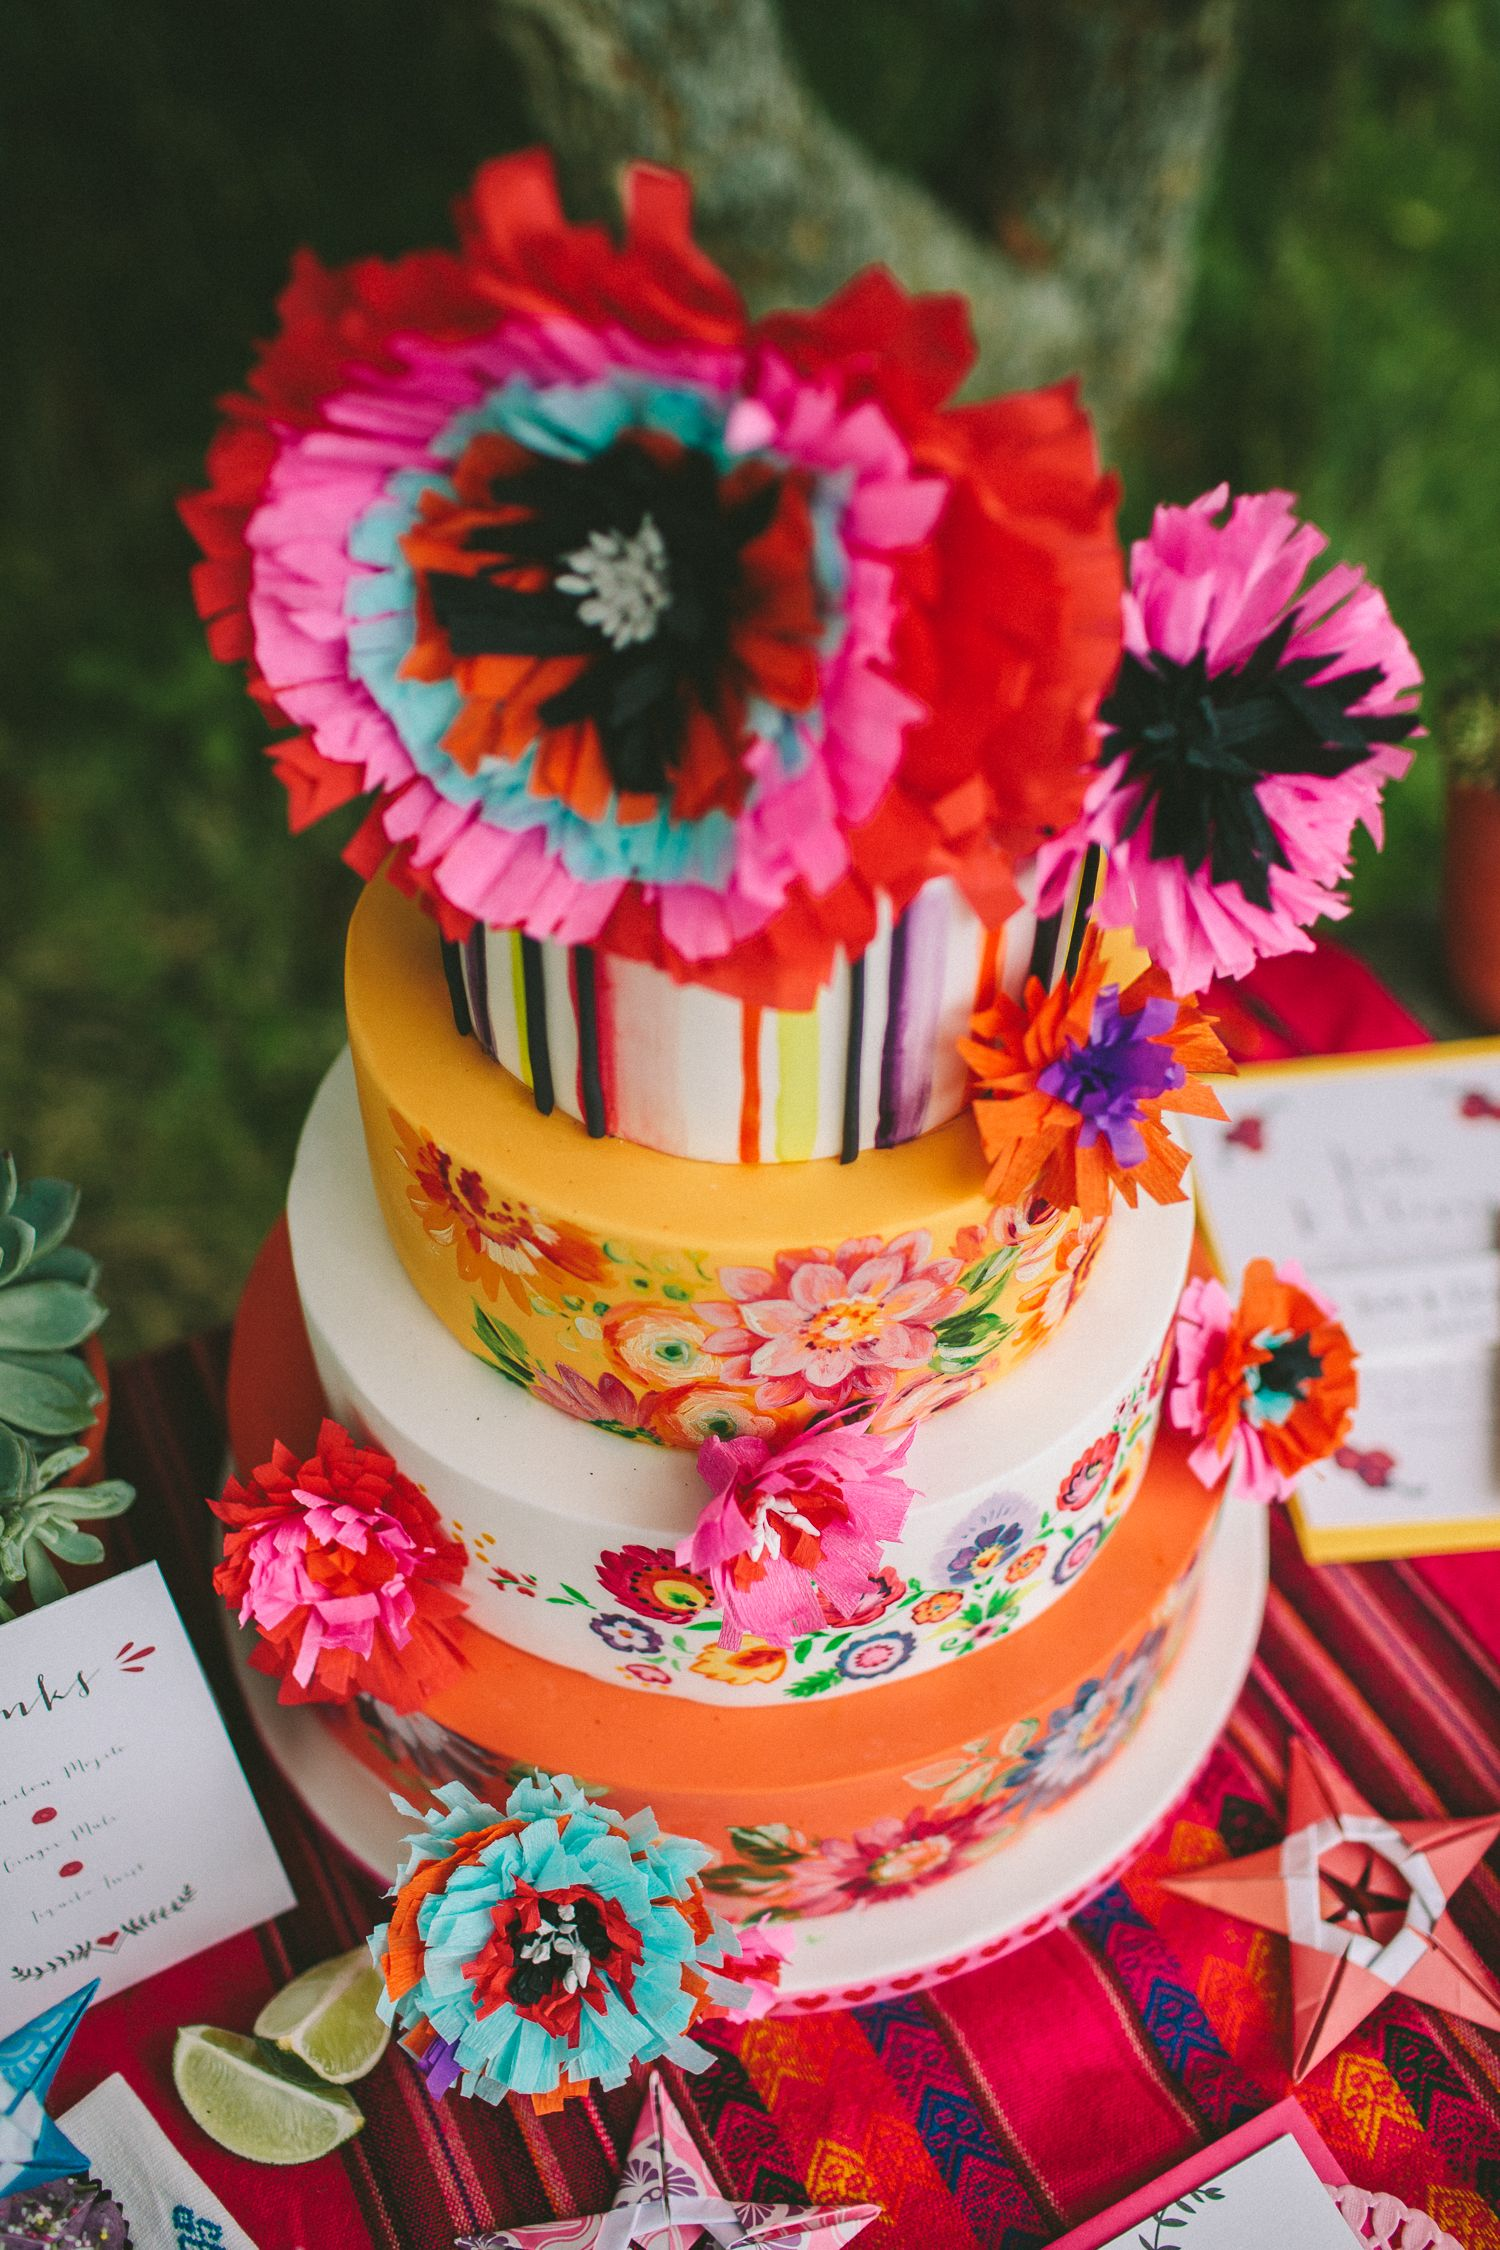 Mexican wedding cake styling from 'Day of the Dead